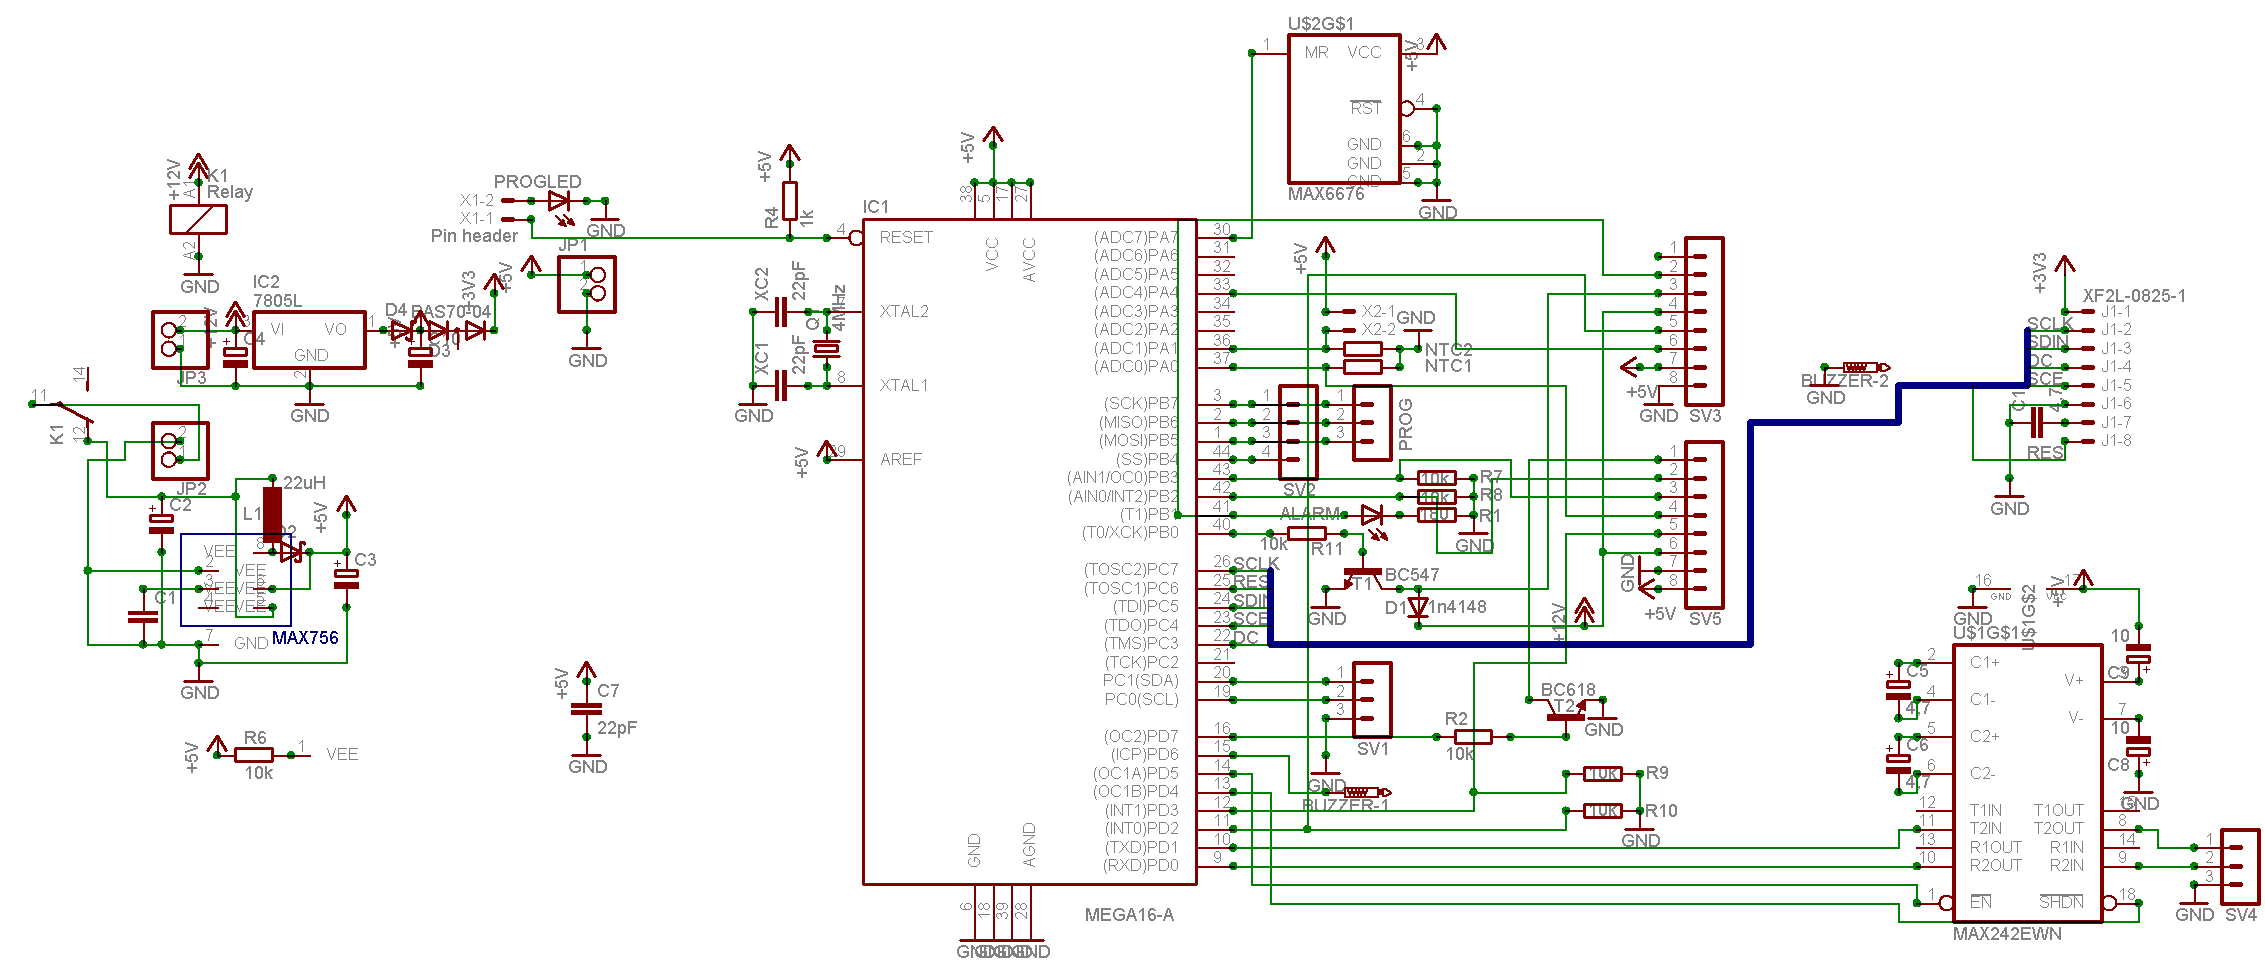 Max232 Eagle Schematic All Kind Of Wiring Diagrams Datasheet Avr Board Checkup Freaks Rh Avrfreaks Net Rs 232 Data Sheet Interface